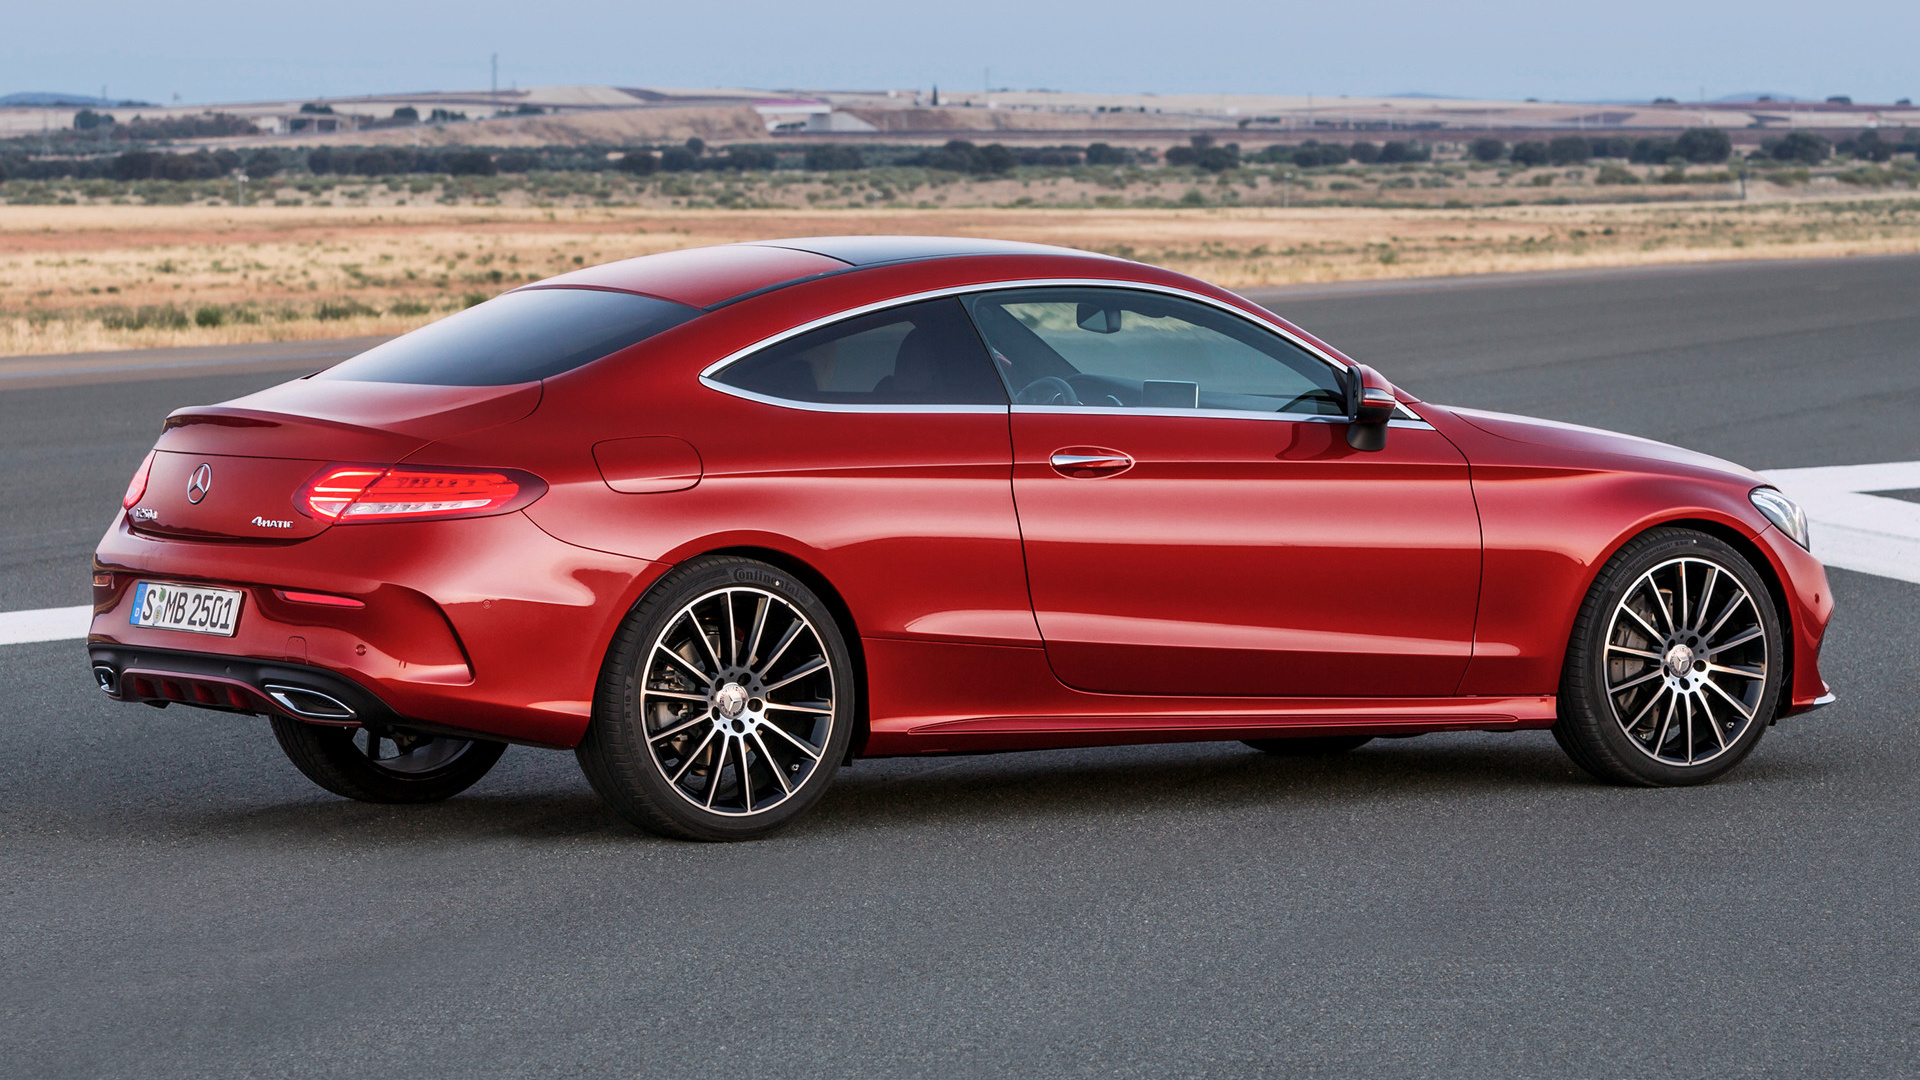 Mercedes benz c class coupe amg line 2015 wallpapers and for 2015 mercedes benz c class sedan